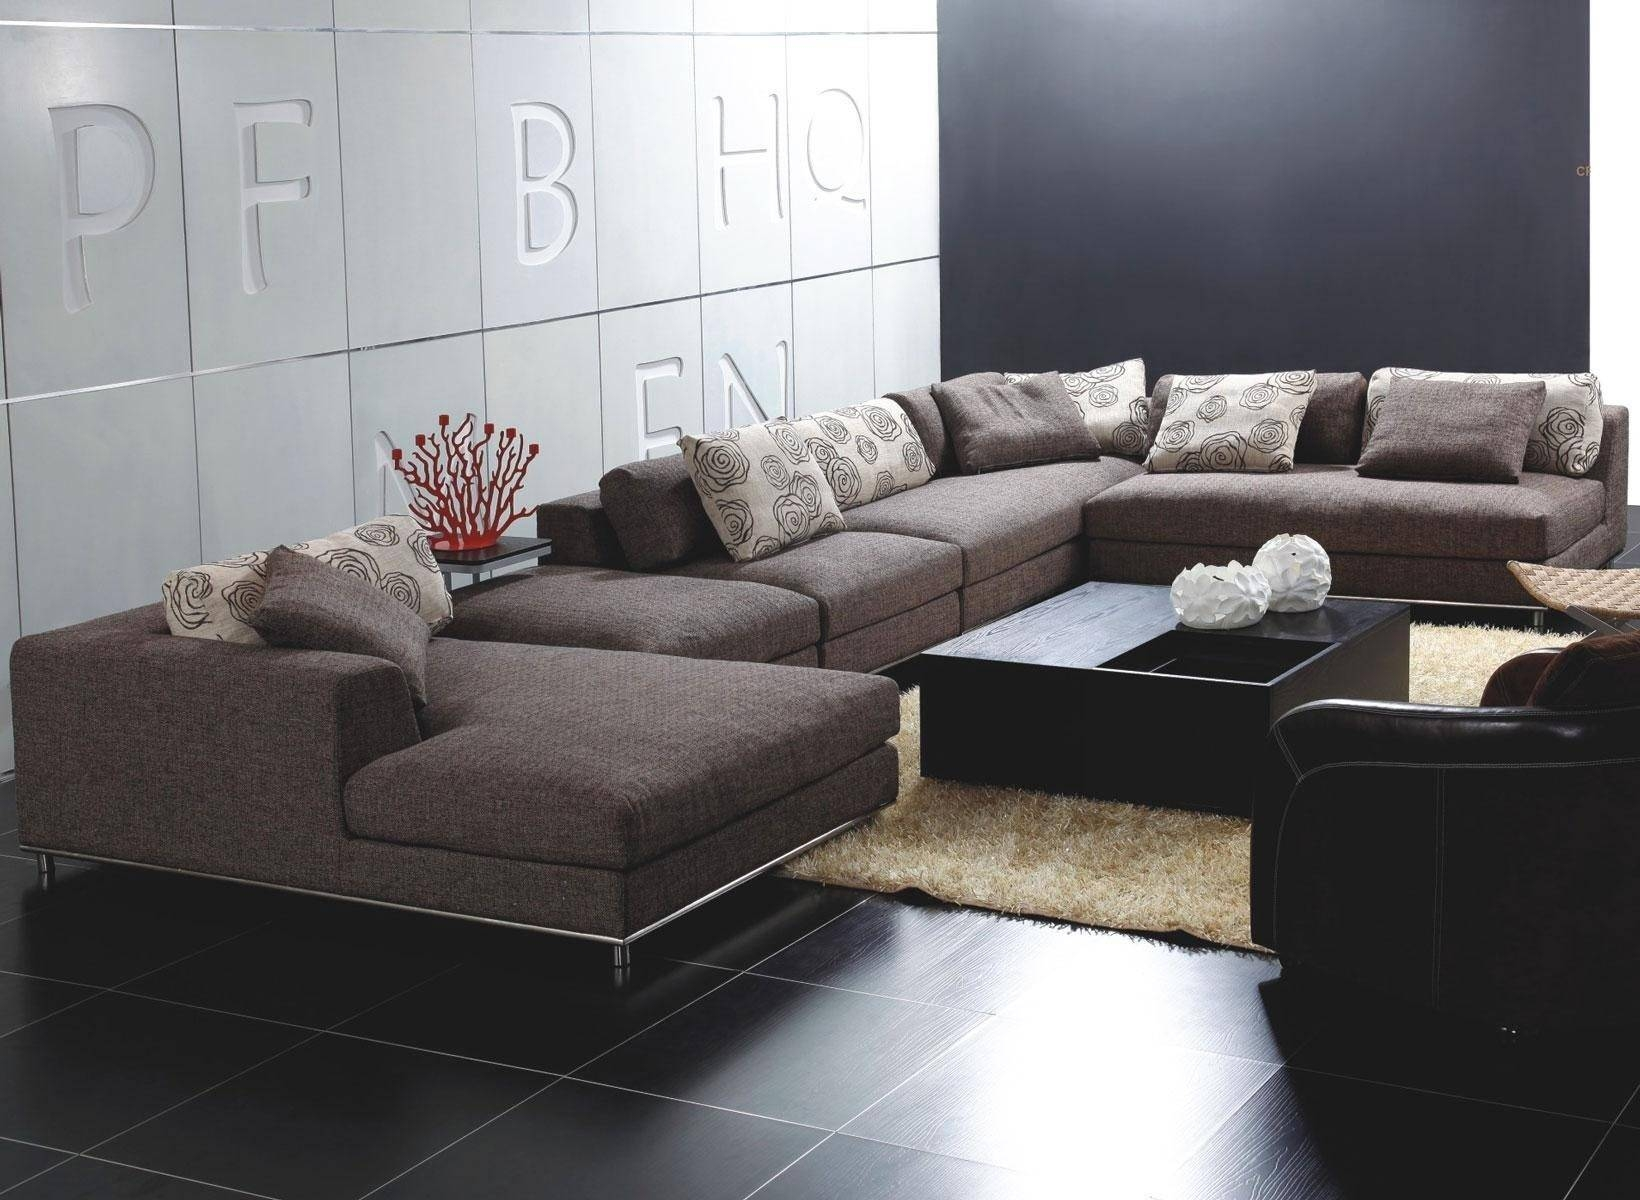 Beautiful Berkline Sectional Sofa 60 On Sectional Sofas Ct With throughout Berkline Sectional Sofa (Image 4 of 30)